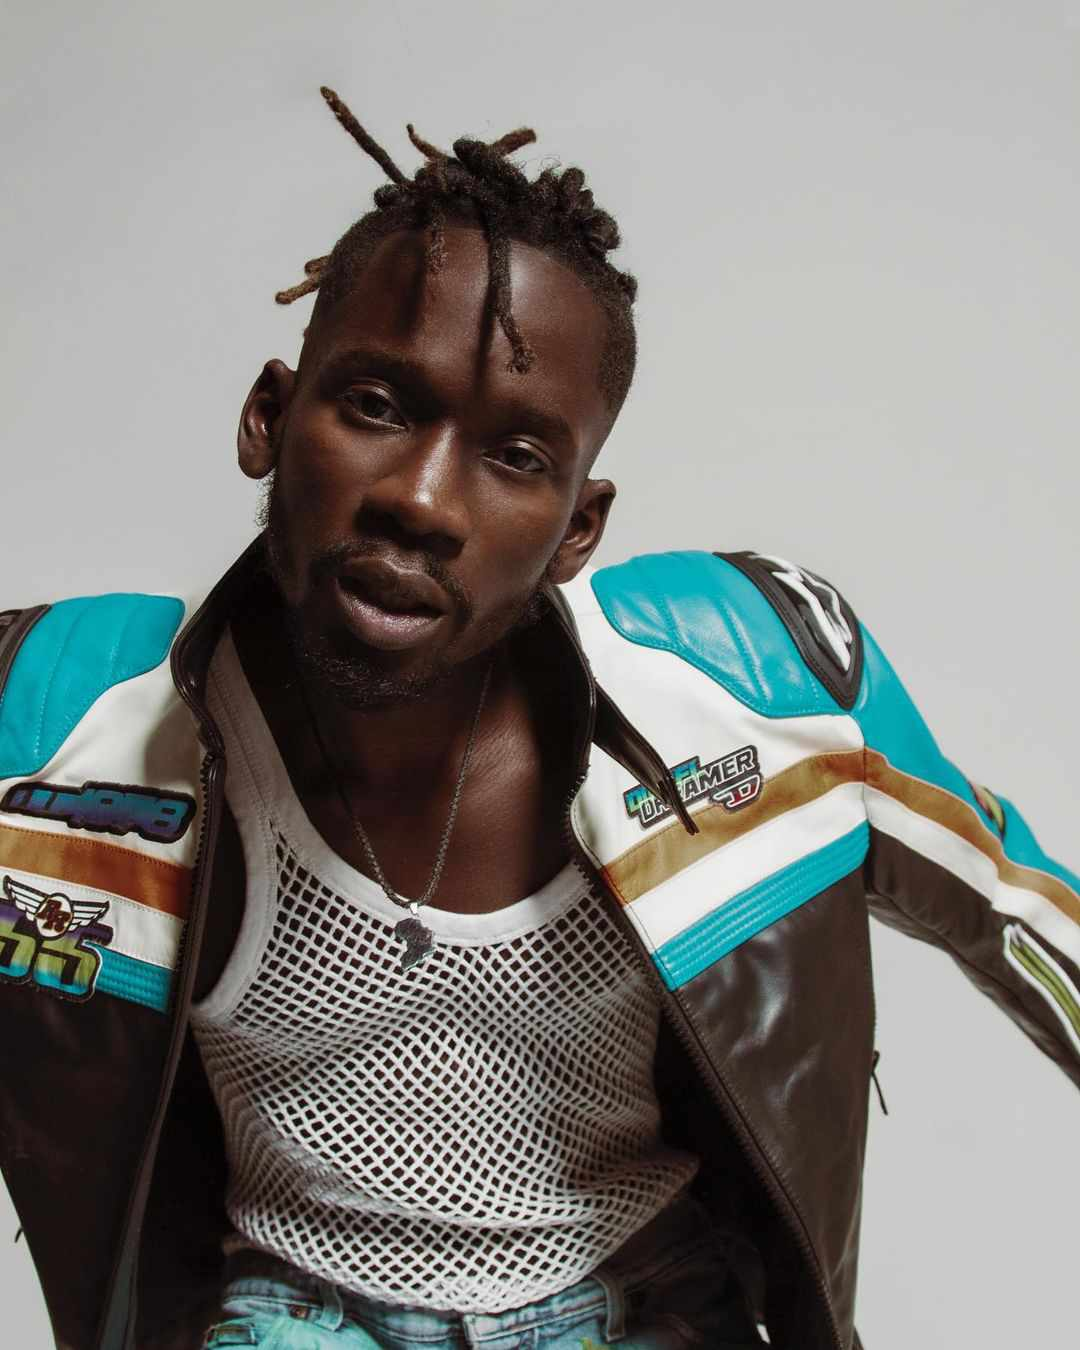 Singer, Mr Eazi cries out for help after getting robbed in Ghana